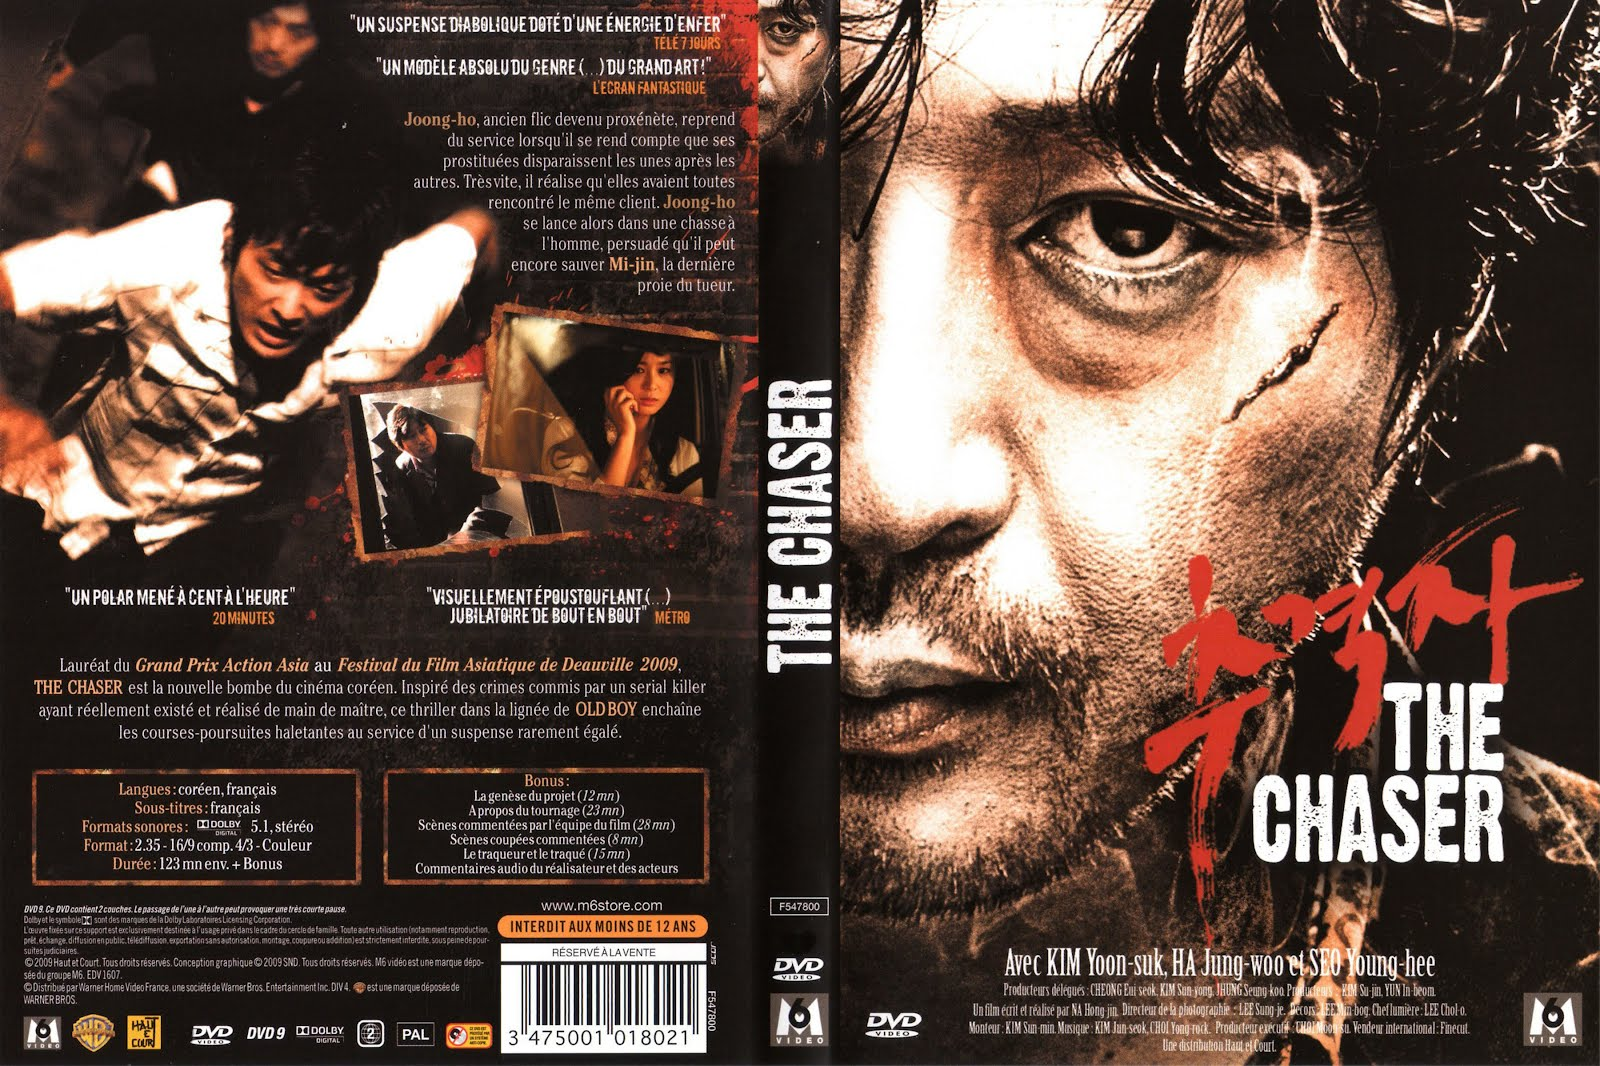 The Chaser Dvd Cover